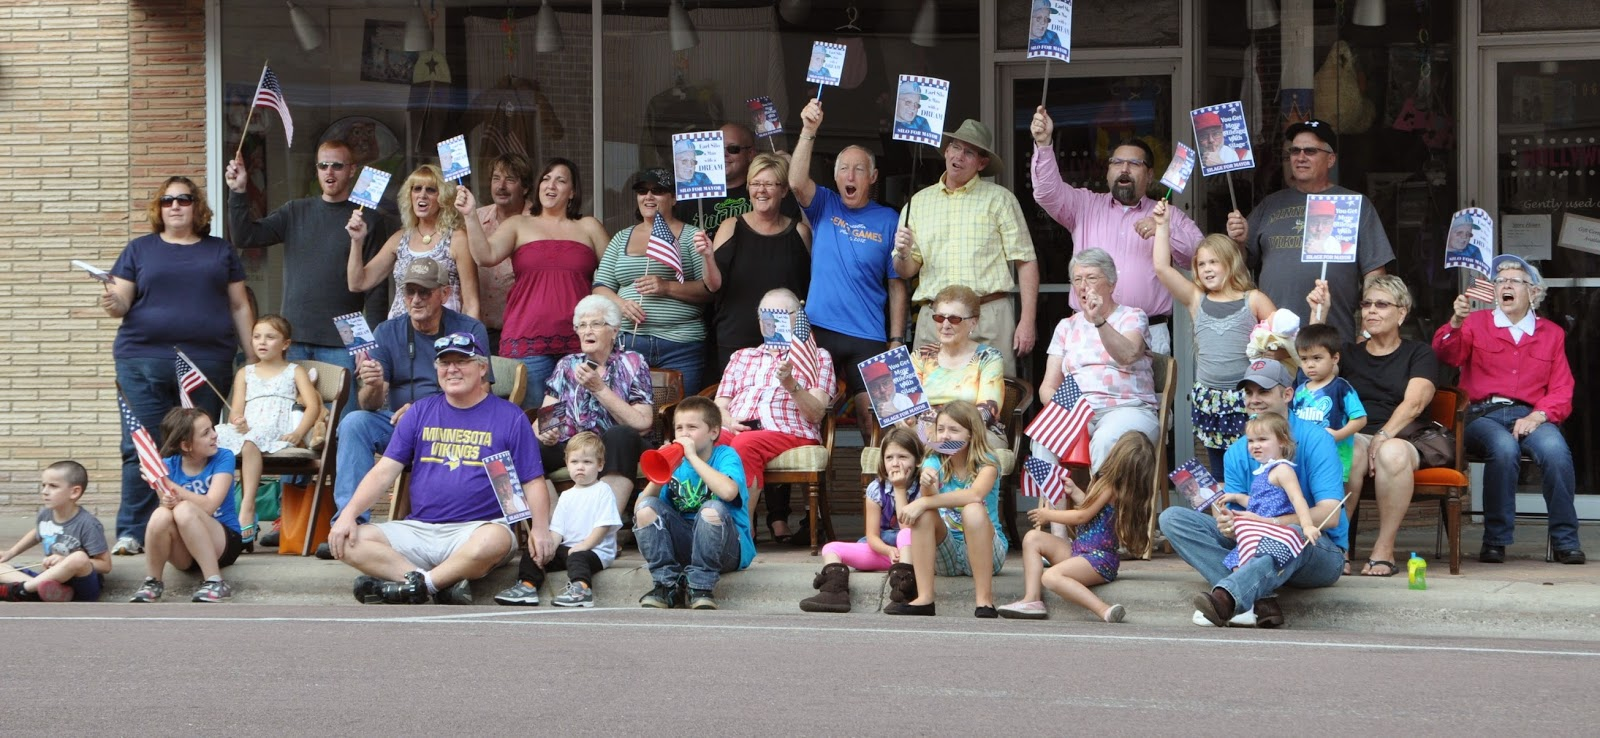 Sweet Swine County Parade breaking all attendance records!